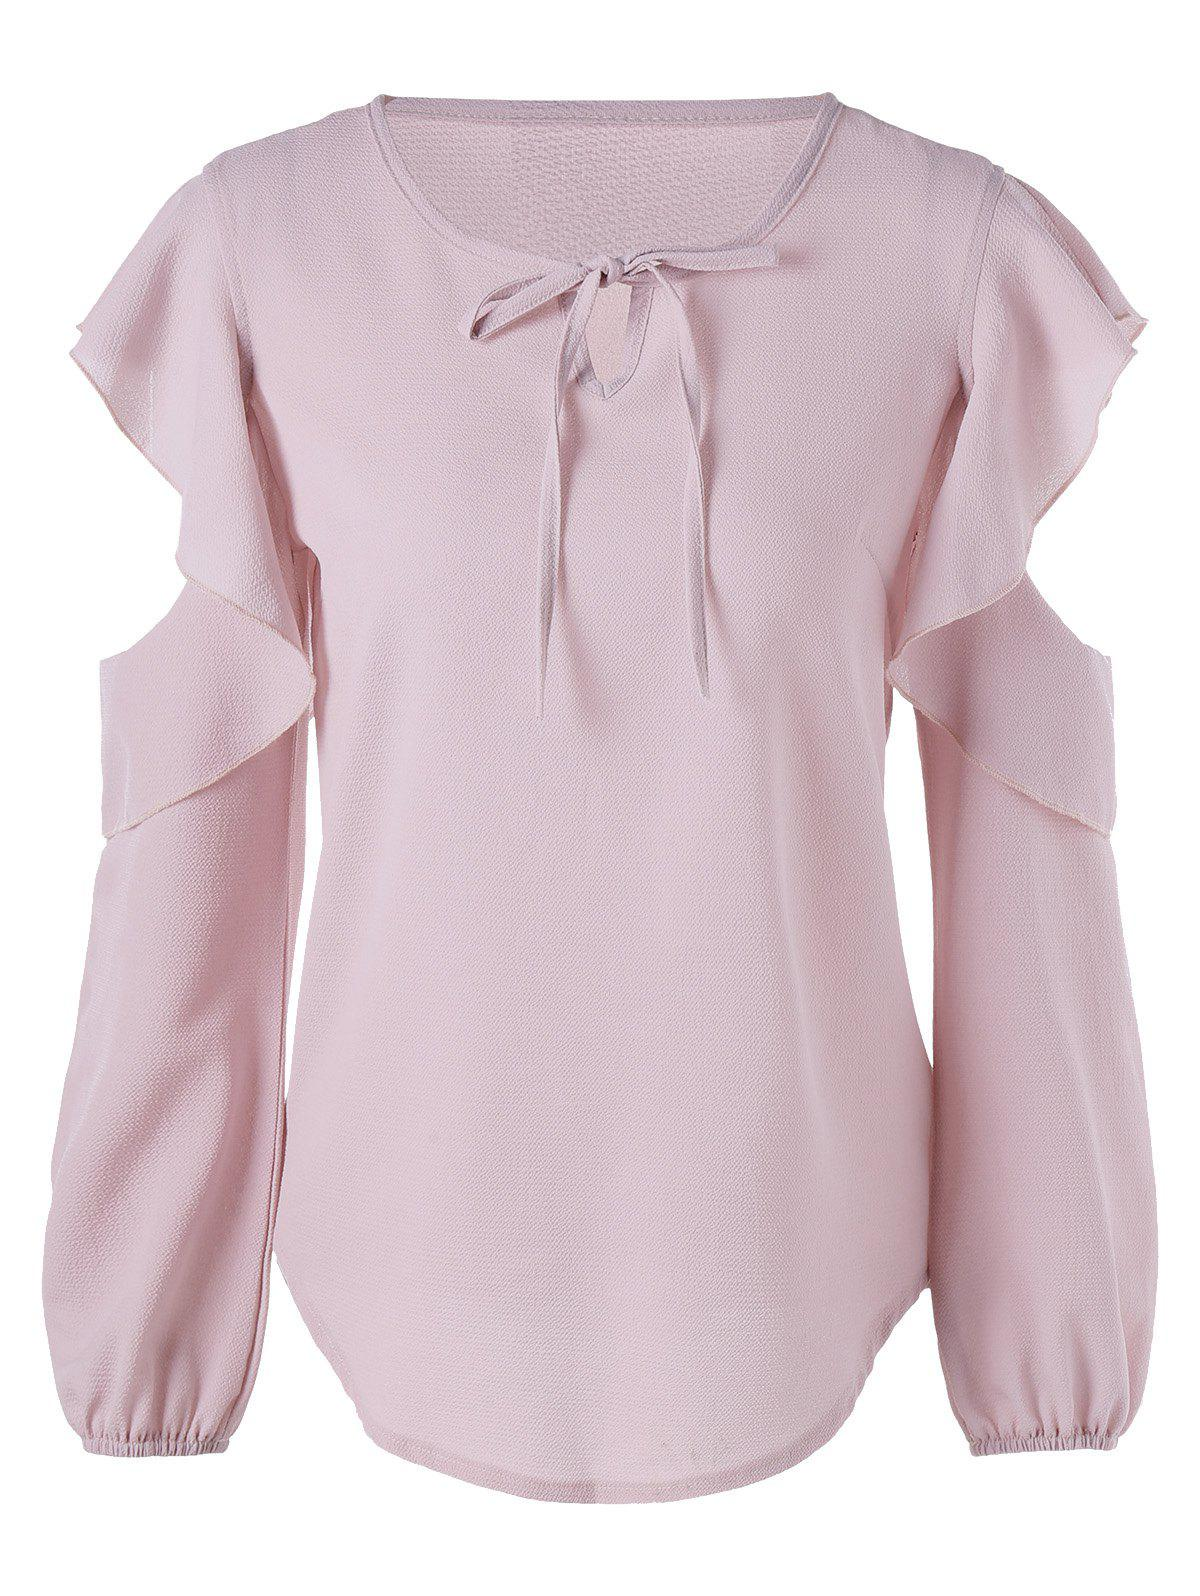 Cold Shoulder Flounced Chiffon Blouse - PINK L